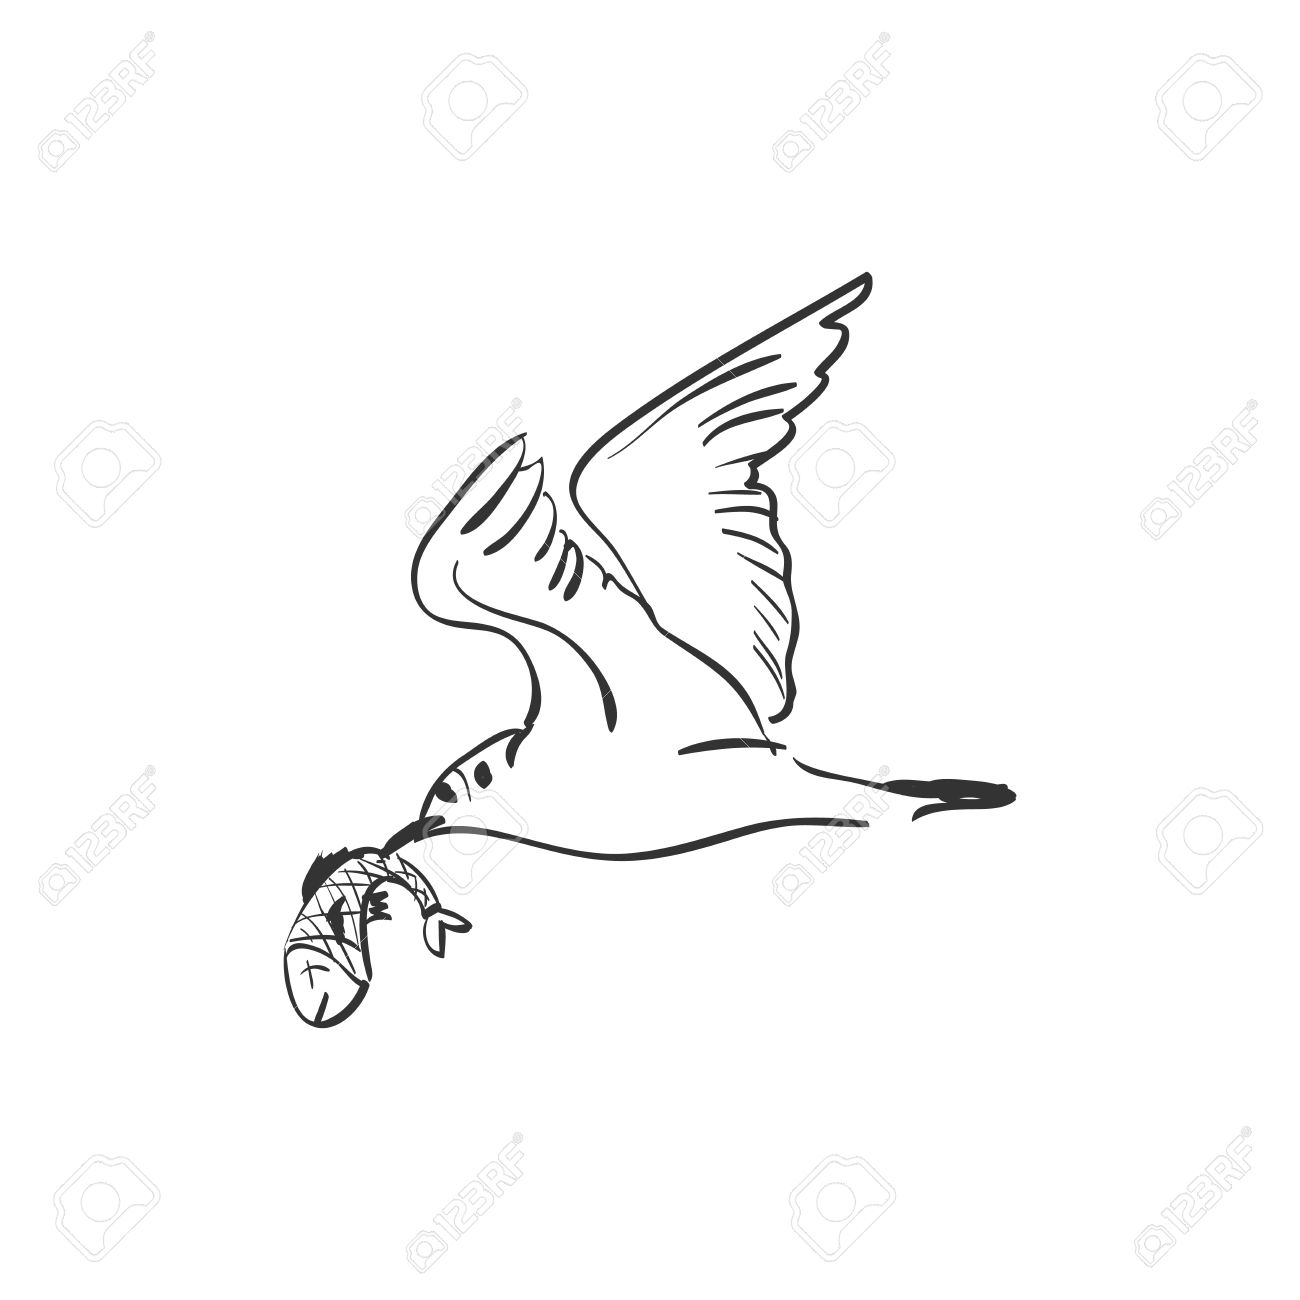 Gull Feathers Clipart